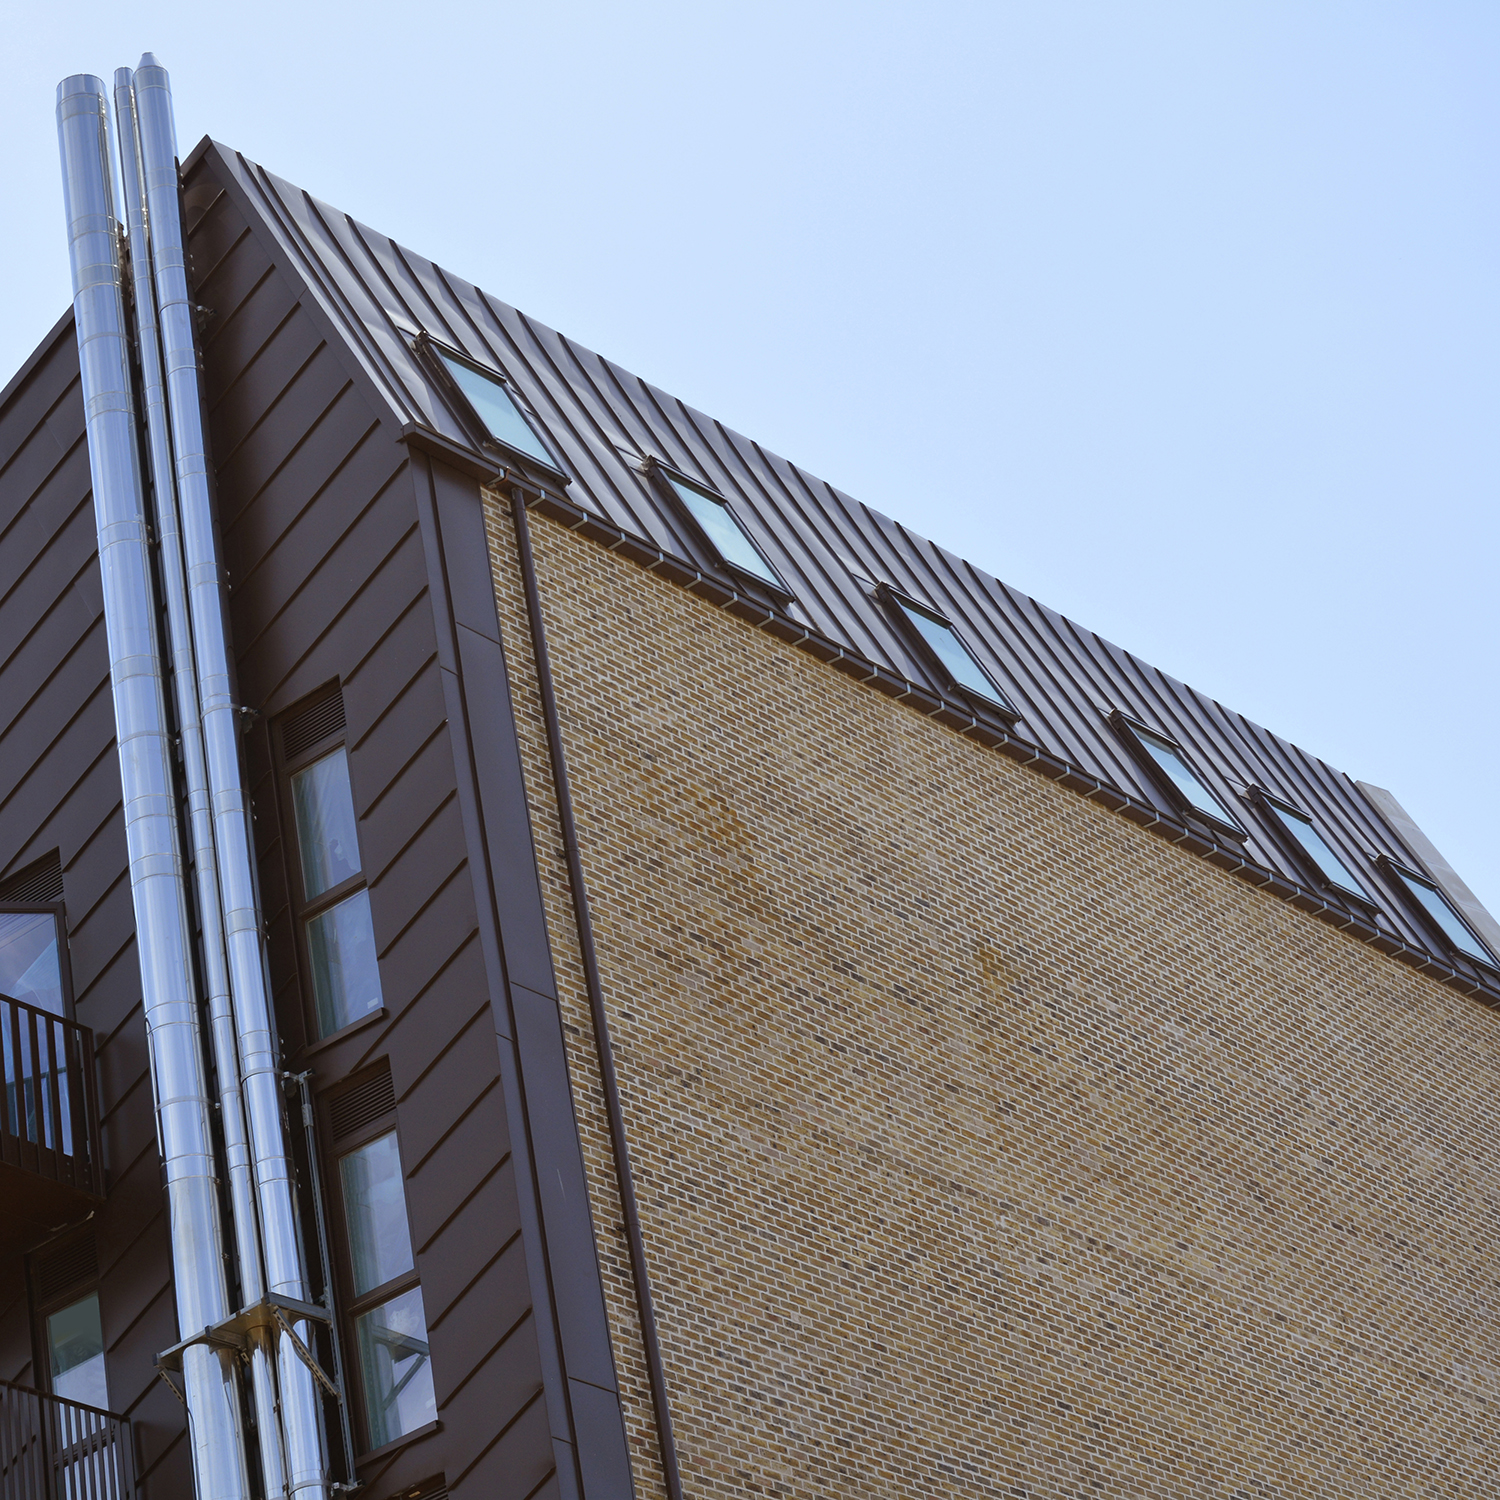 4. The facades employ both vertical and diagonally laid zinc